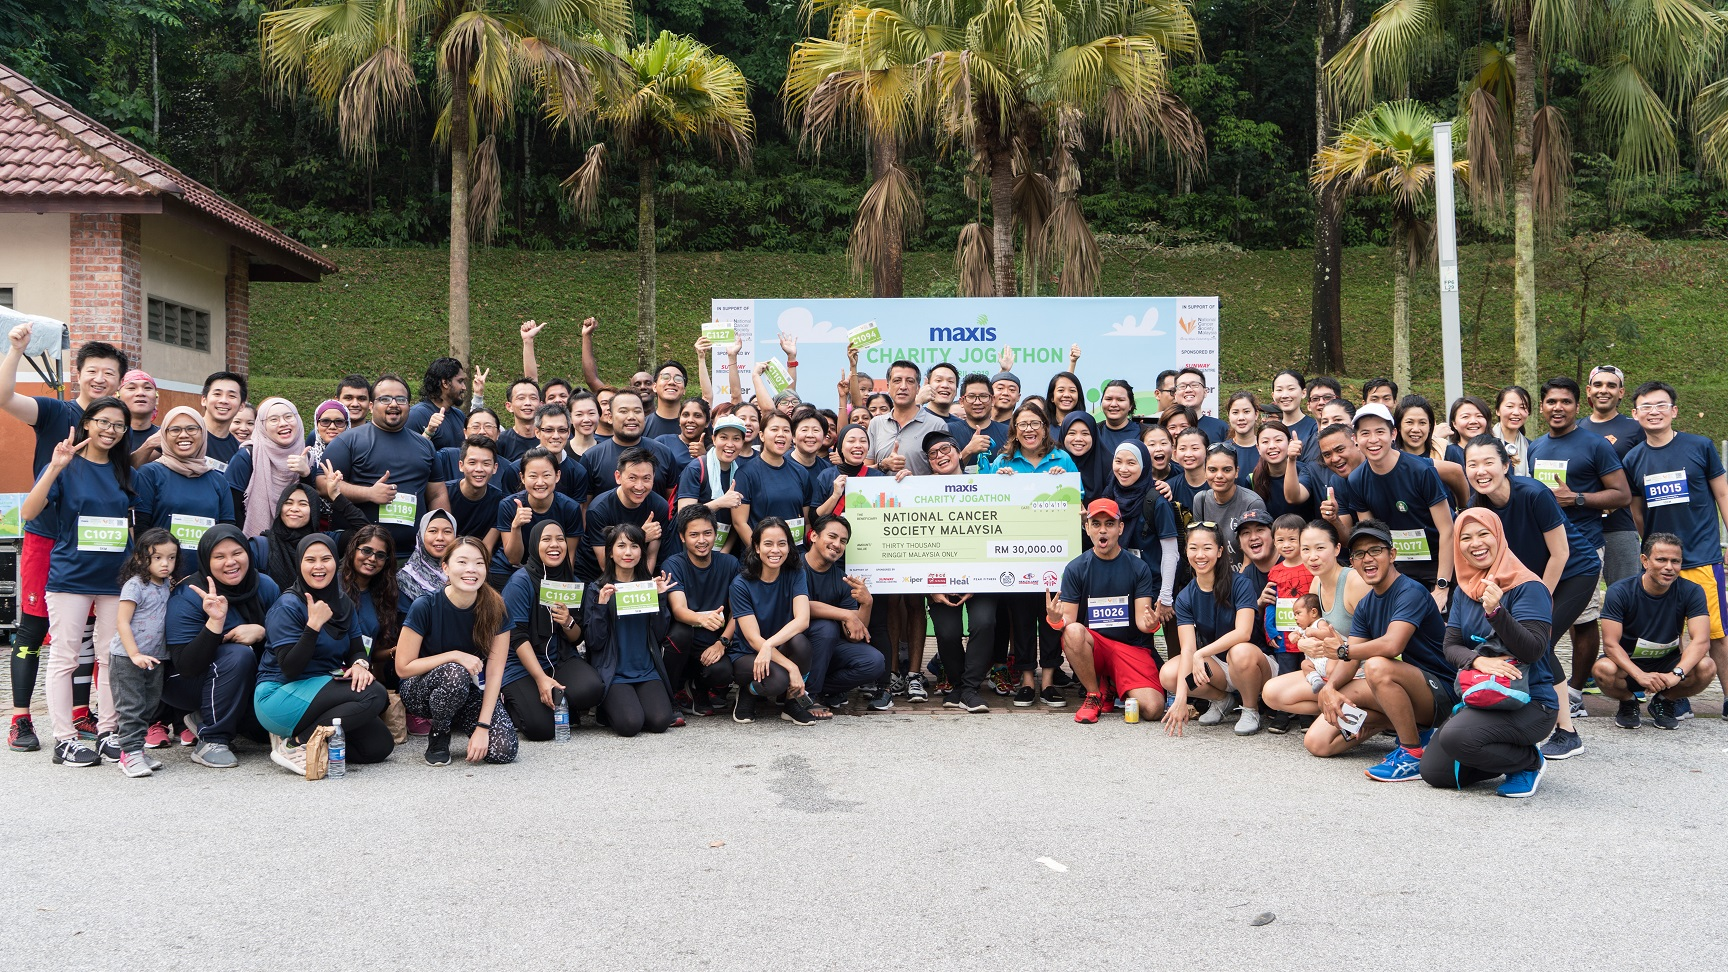 Maxis employees unite to raise RM30,000 for the National Cancer Society of Malaysia